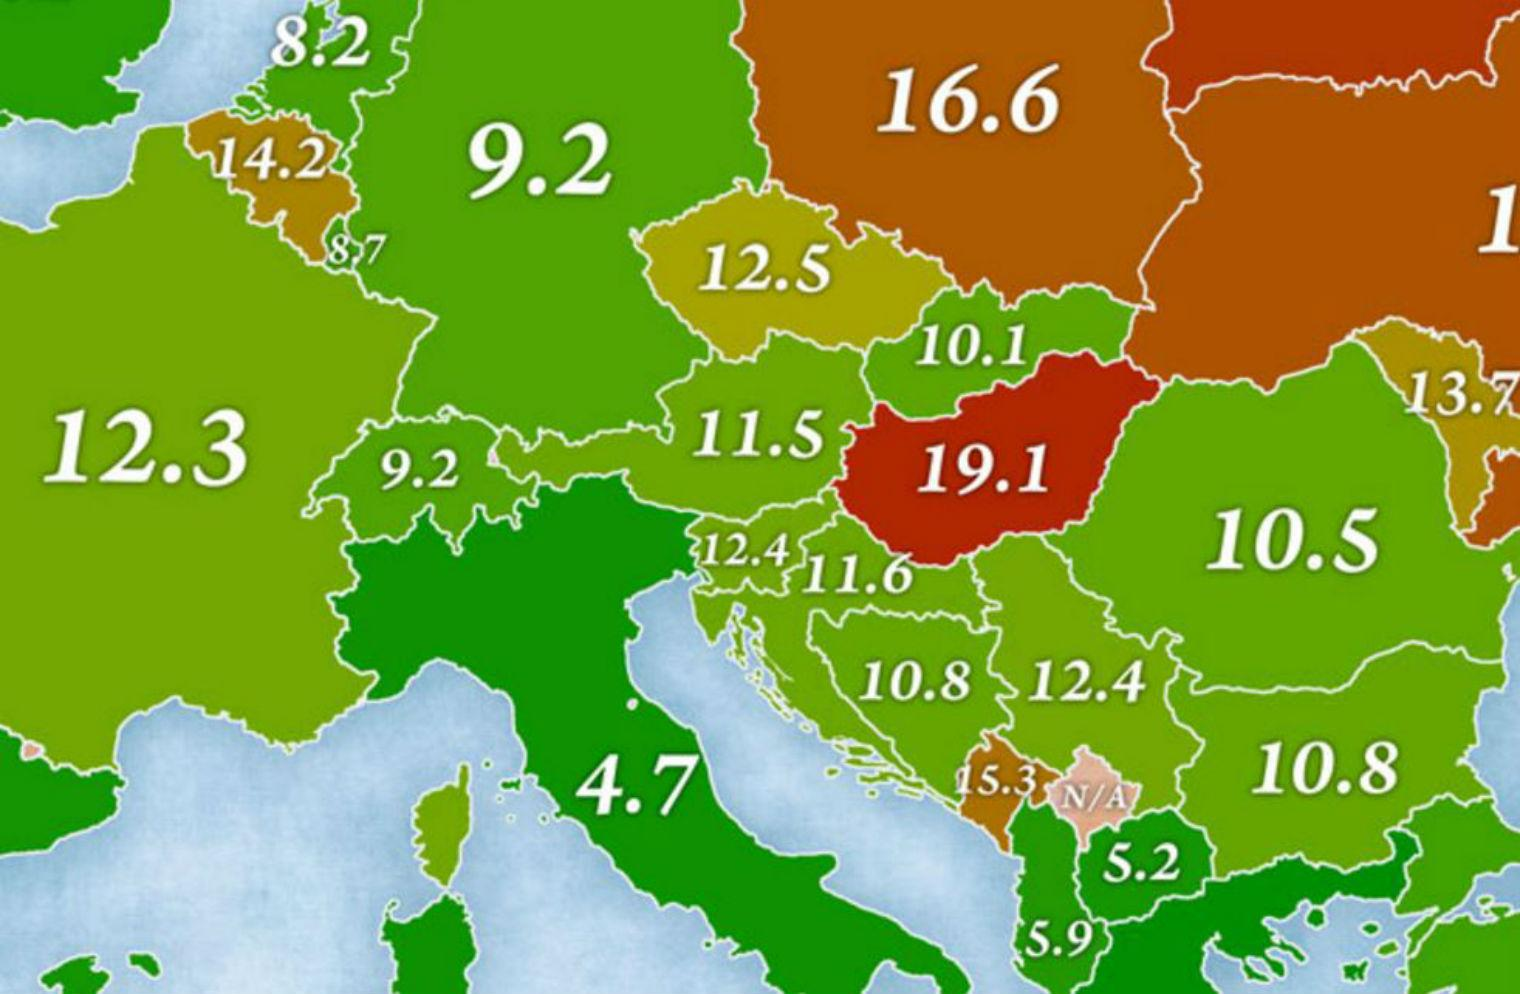 A Map Of Europe By Suicide Rates In Each Country Indy100